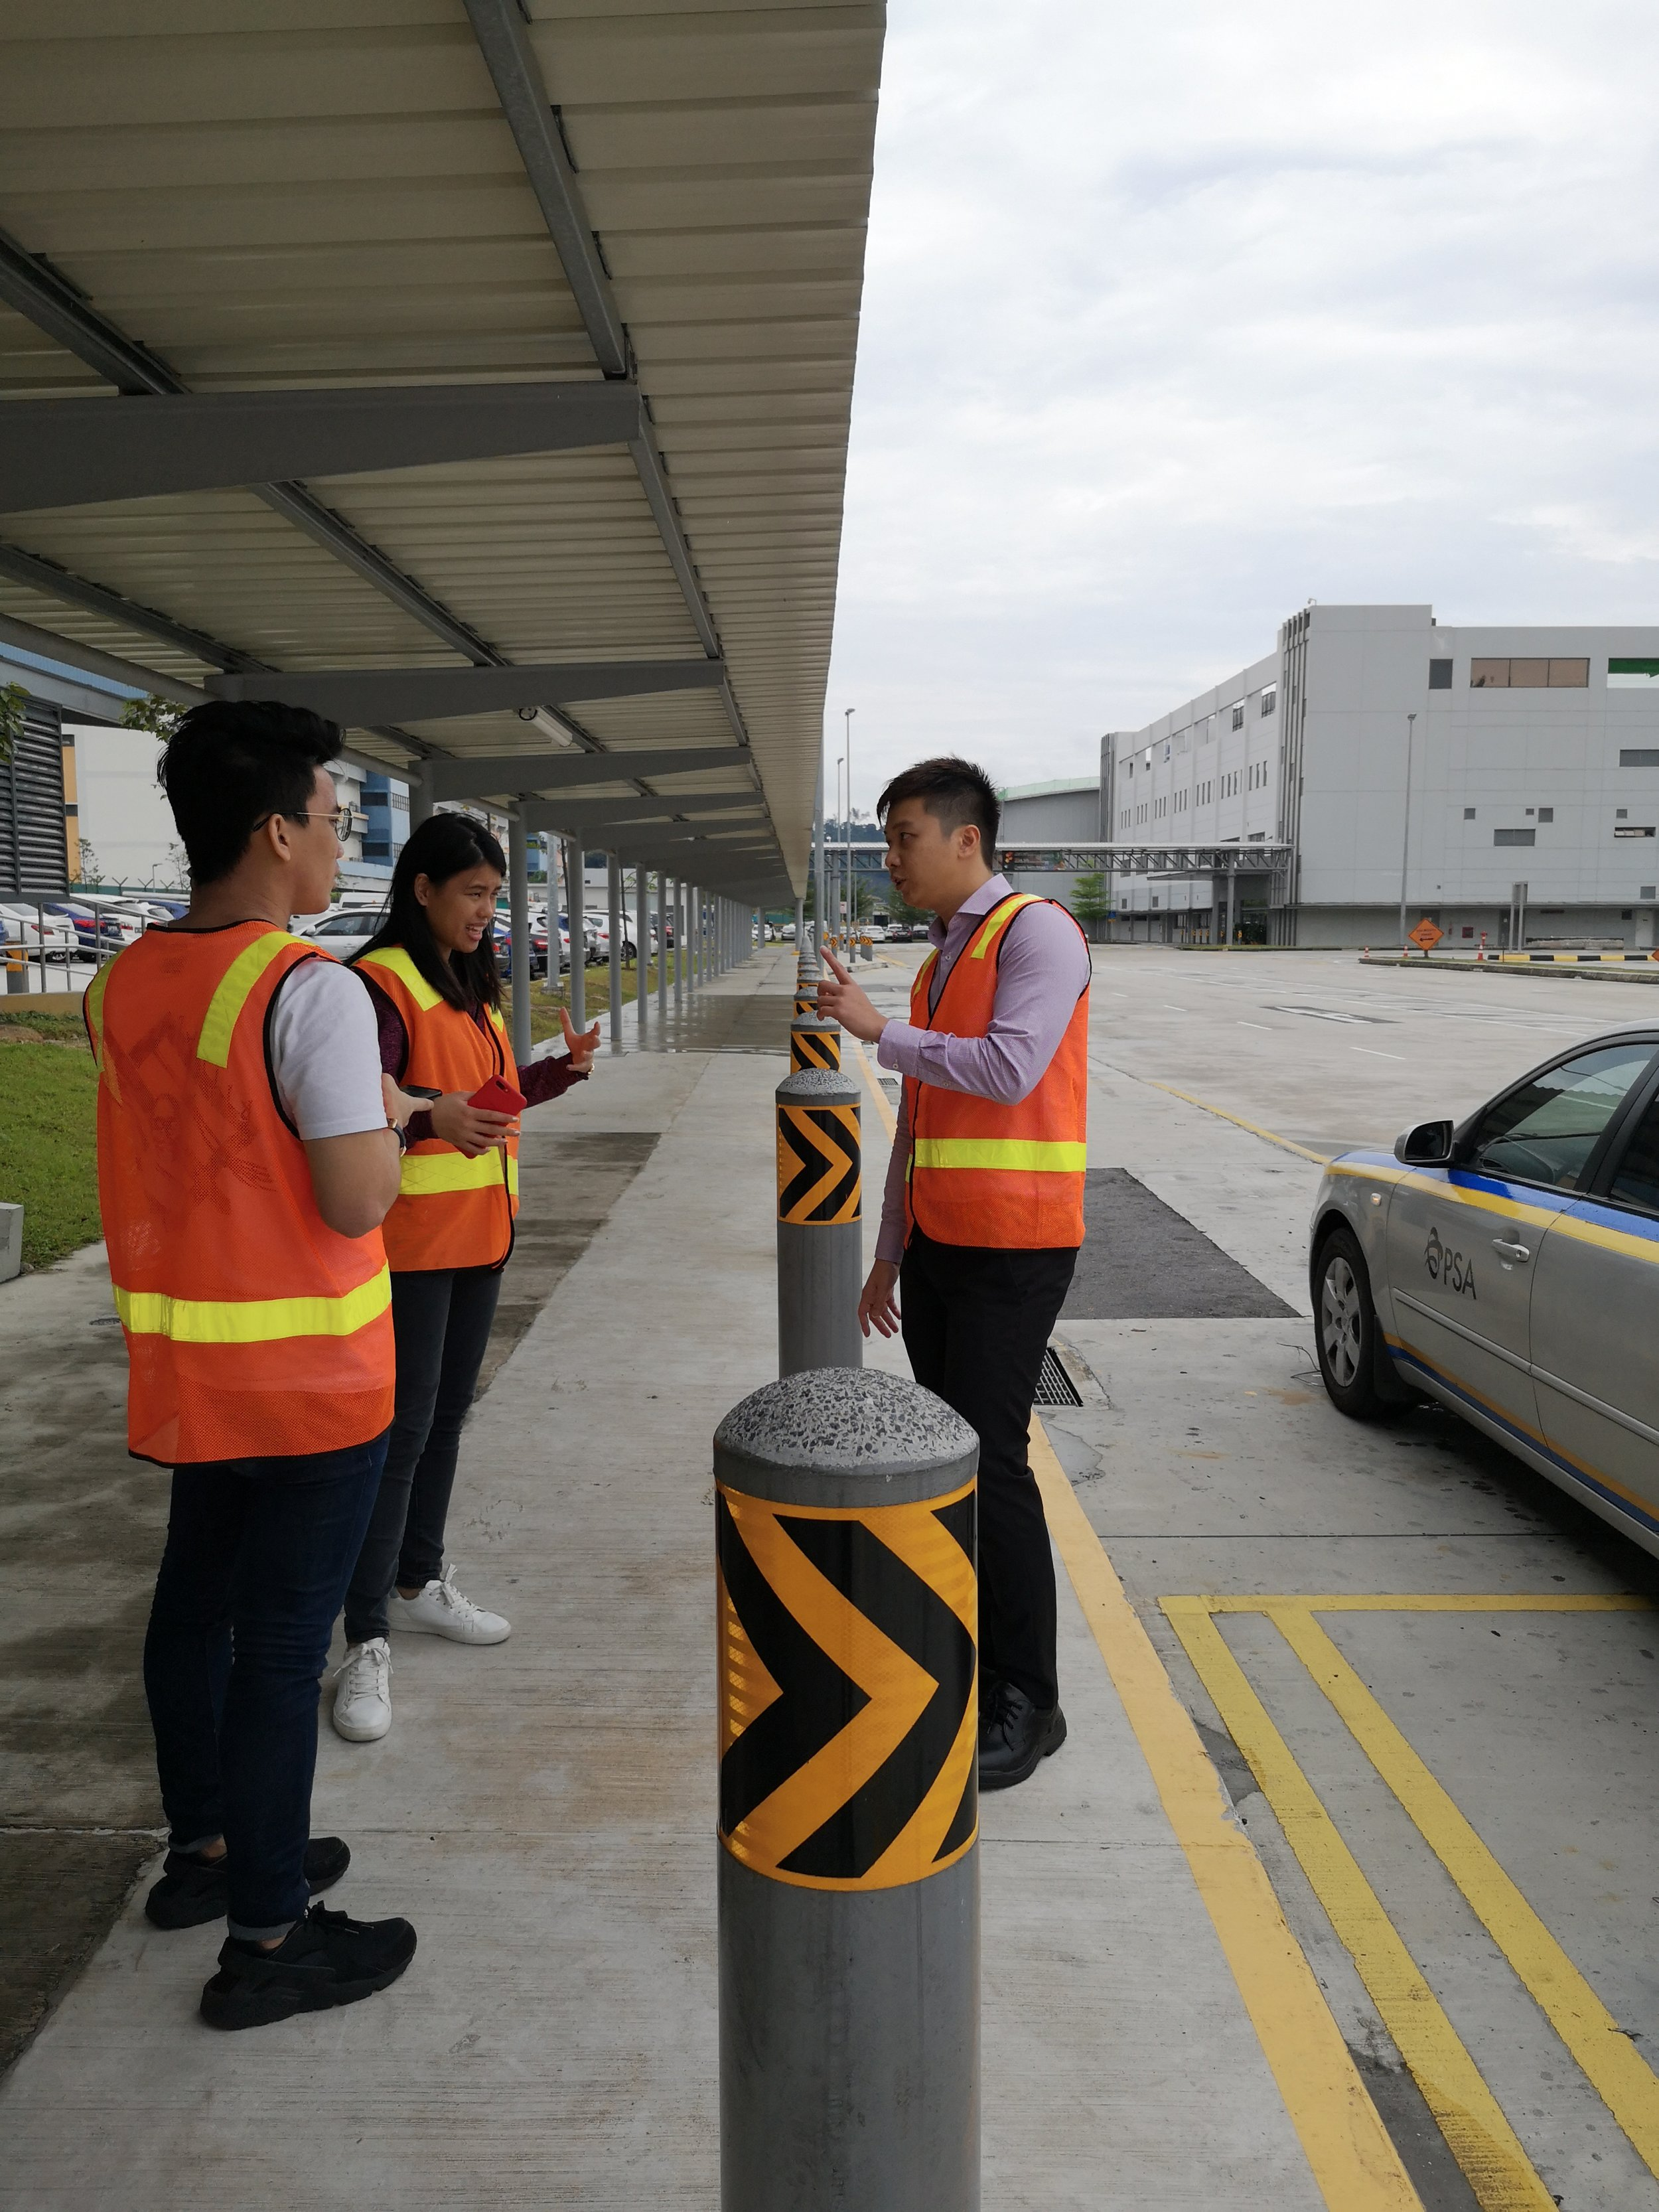 3_Site observation to understand the port layout and service requirements.jpg